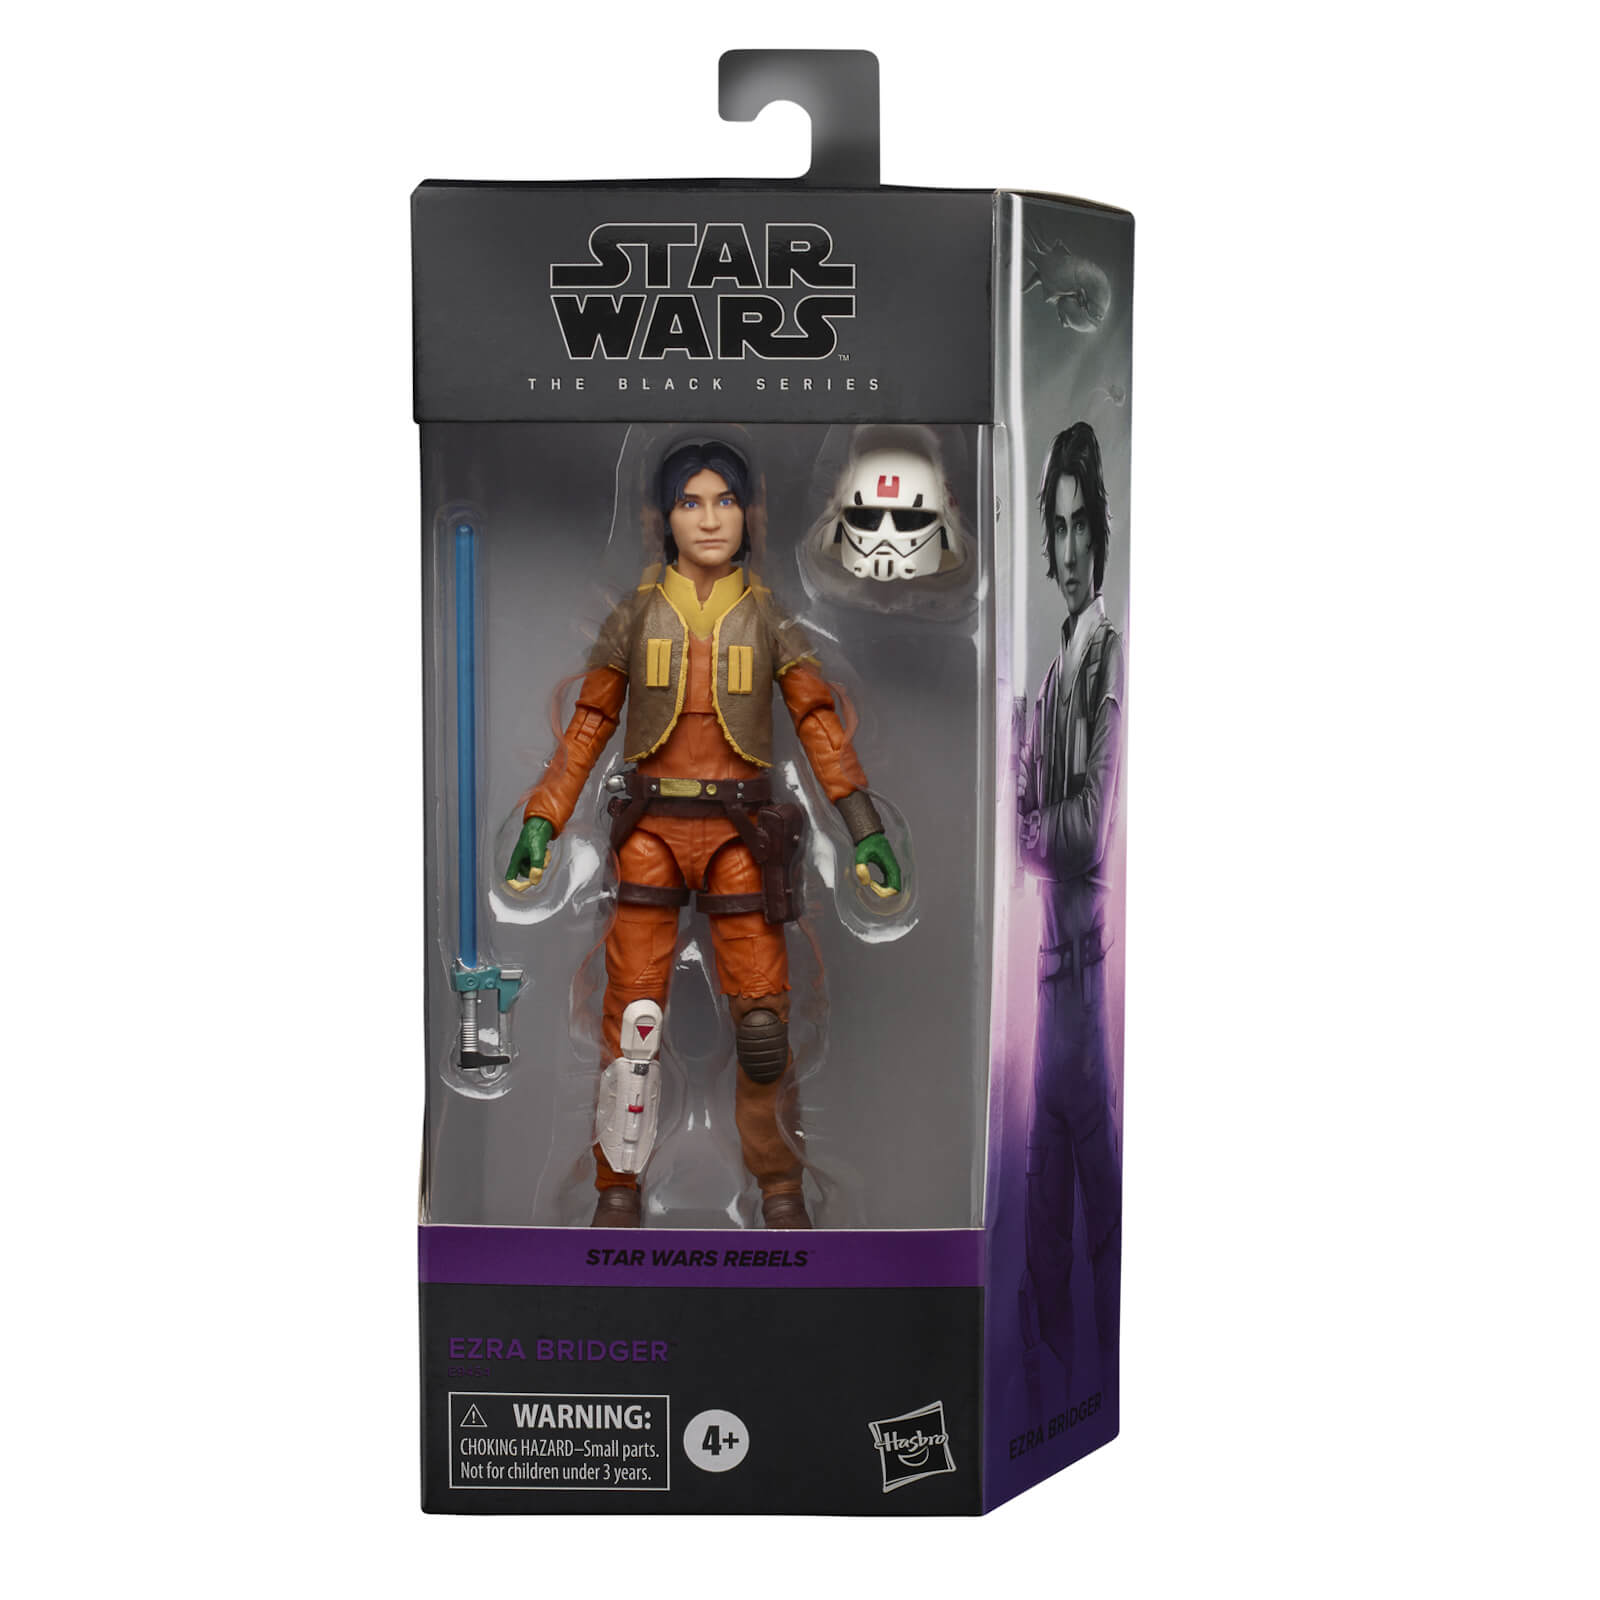 Hasbro Star Wars Black Series Rebels Ezra Bridger 6-Inch Scale Figure